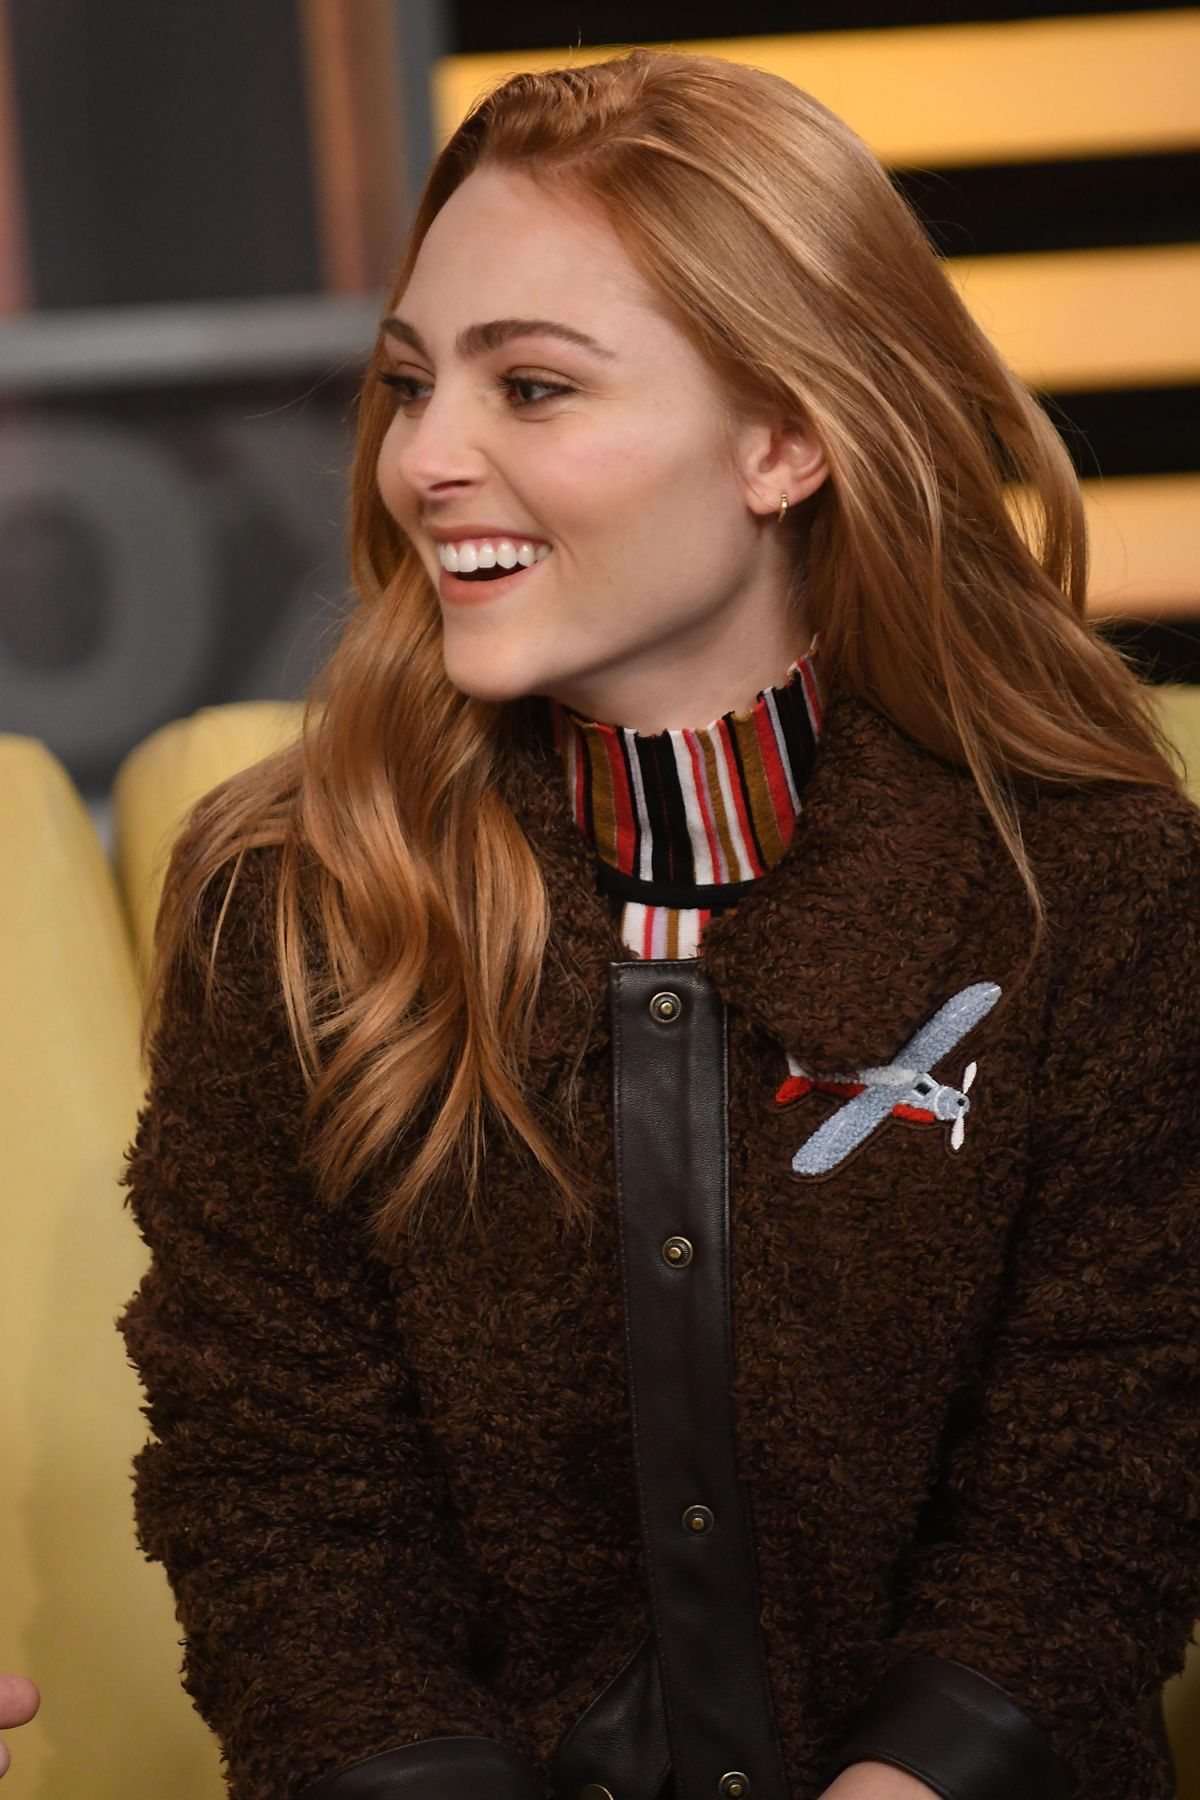 AnnaSophia Robb At 'Good Day New York' in NYC - Celebzz